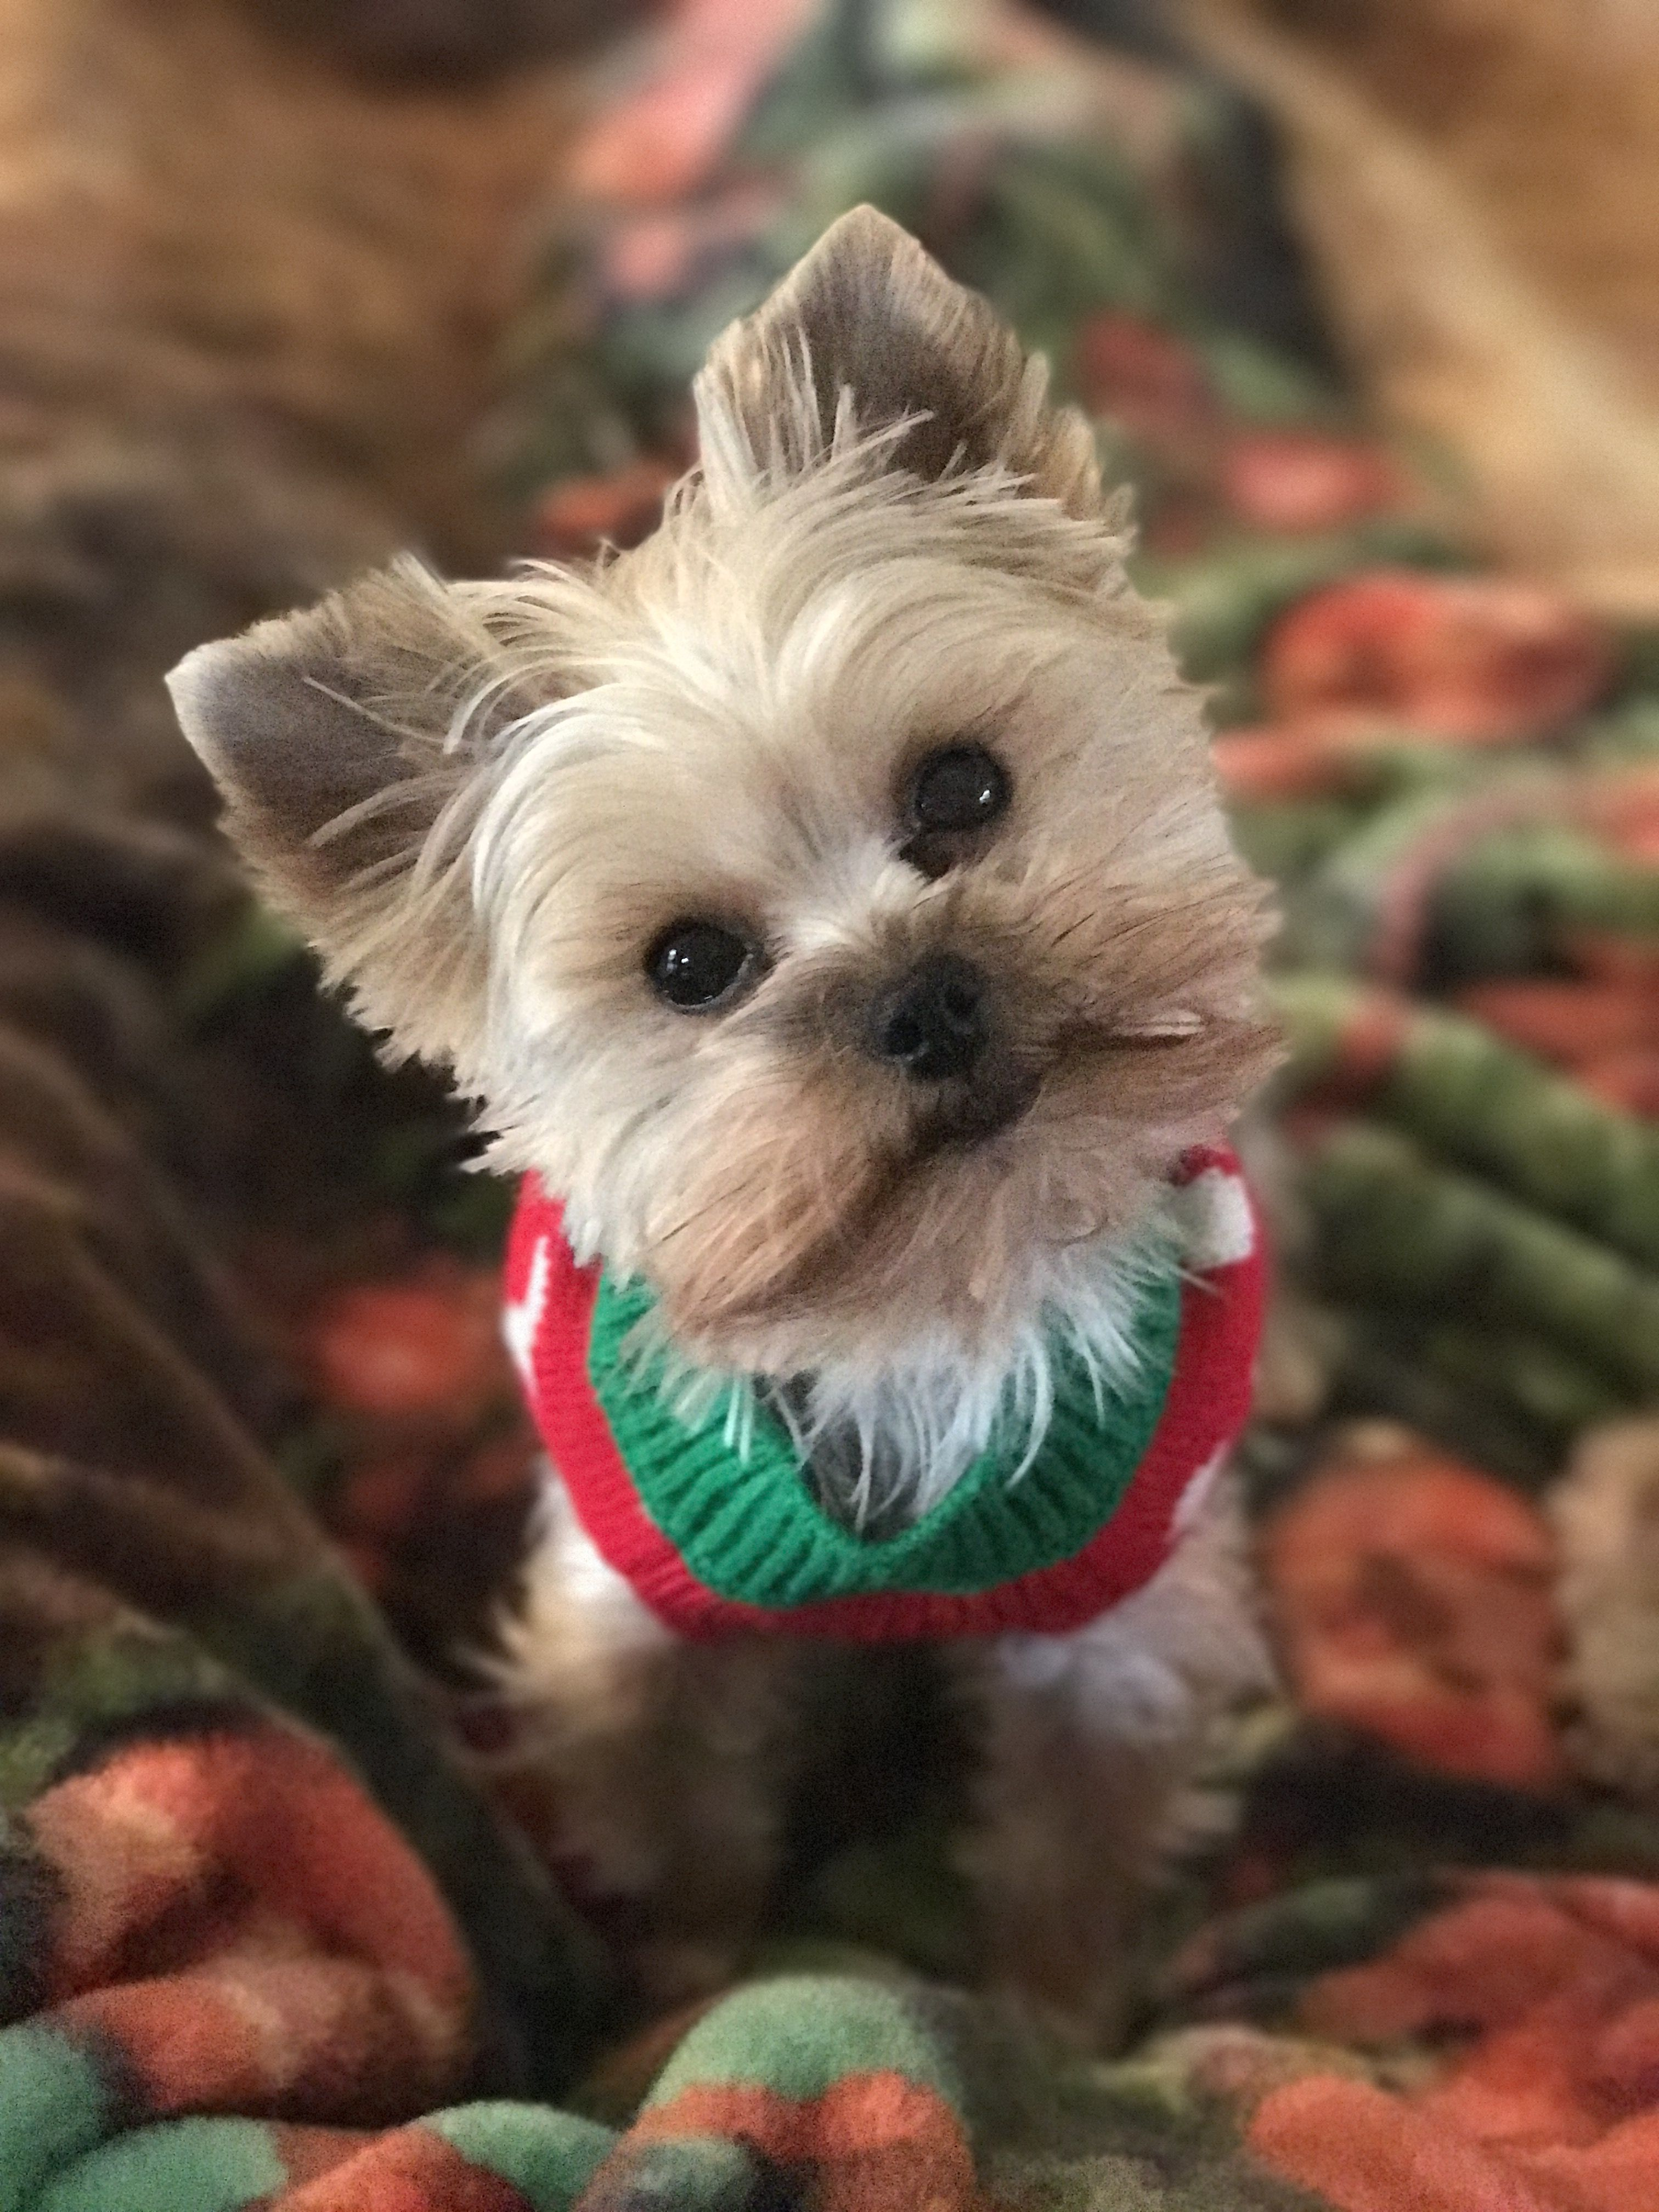 My Little Yorkie Named Twinkie All Dressed Up For Christmas Yorkie Yorkshire Terrier Yorkie Names